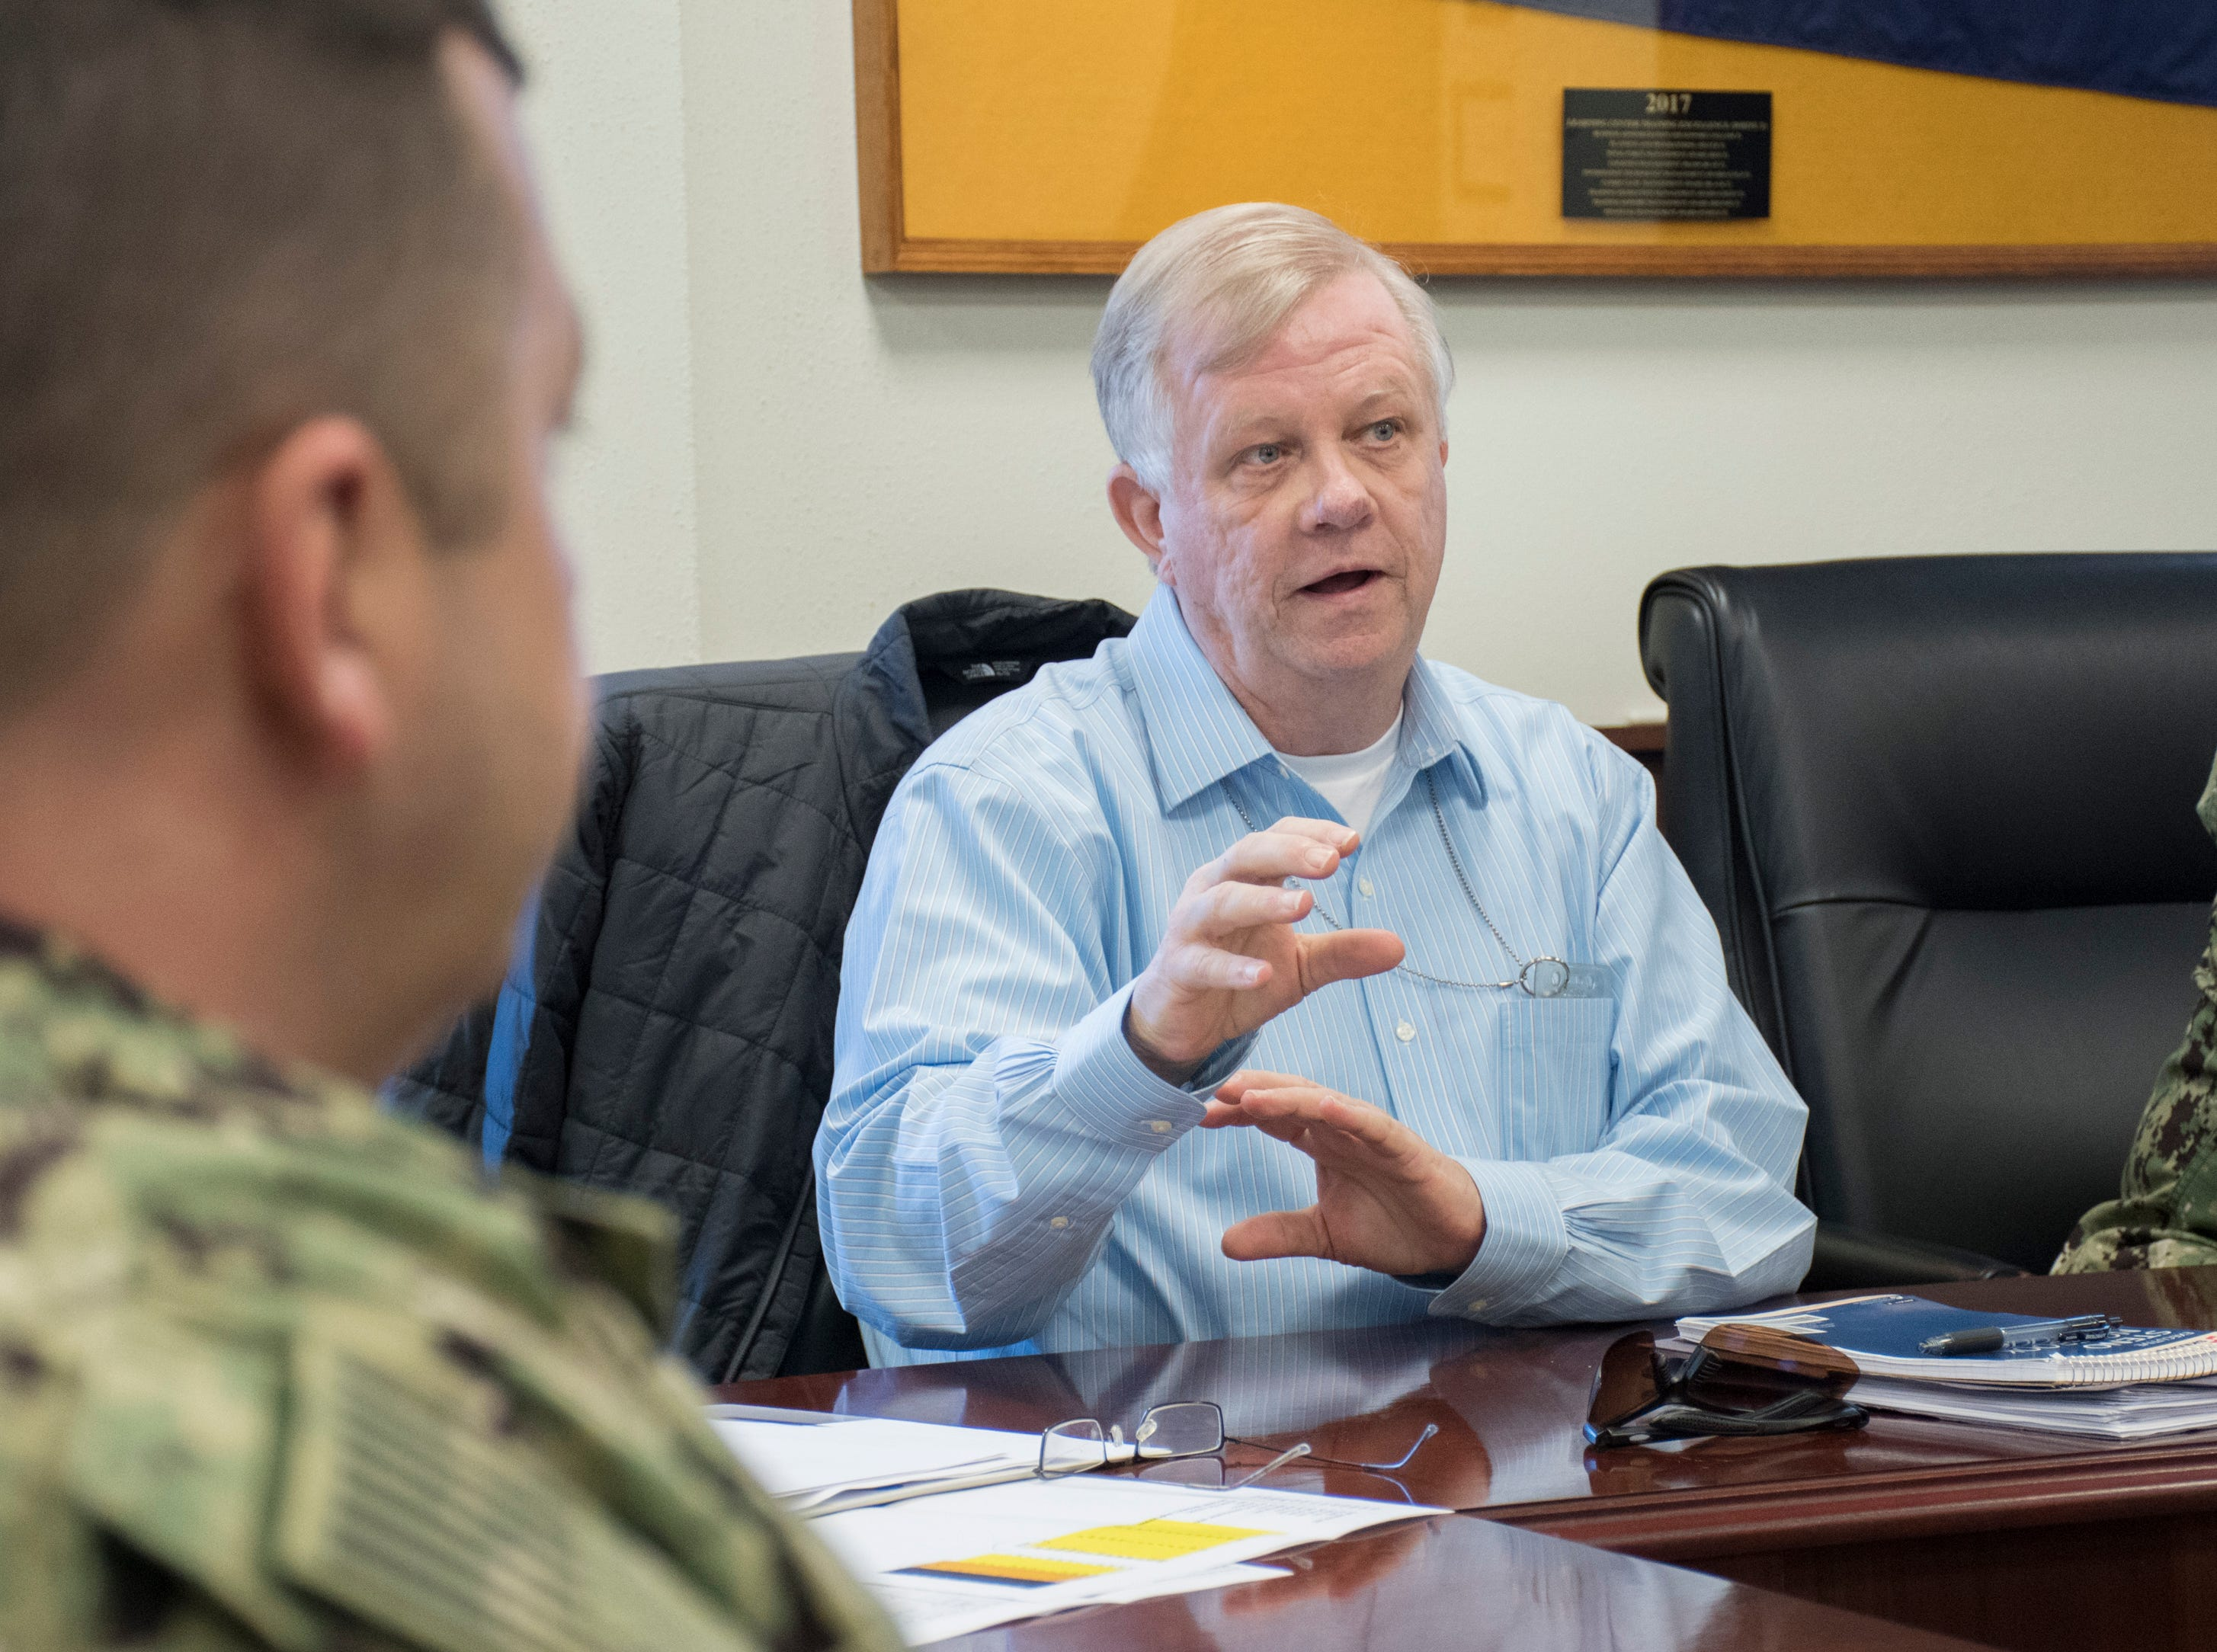 Director of training Charles Sauter talks about the building projects and expansion underway at NAS Pensacola Corry Station in Pensacola on Thursday, January 10, 2019.